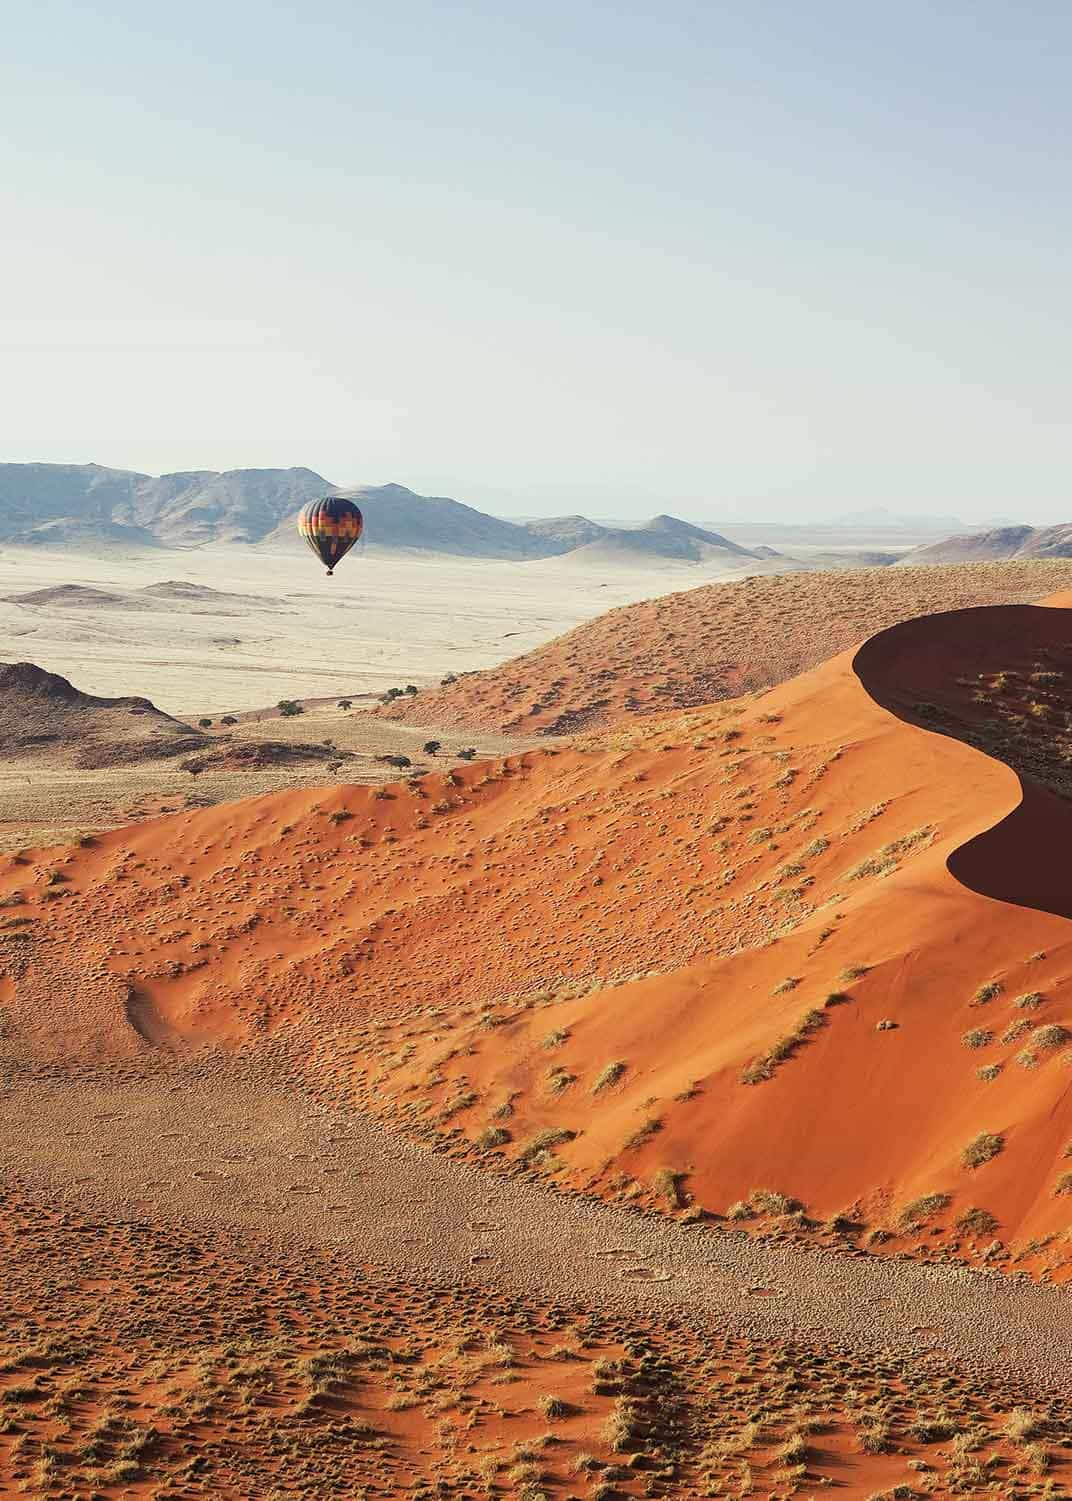 Namibia pictured from a Safari Drive hot air balloon experience